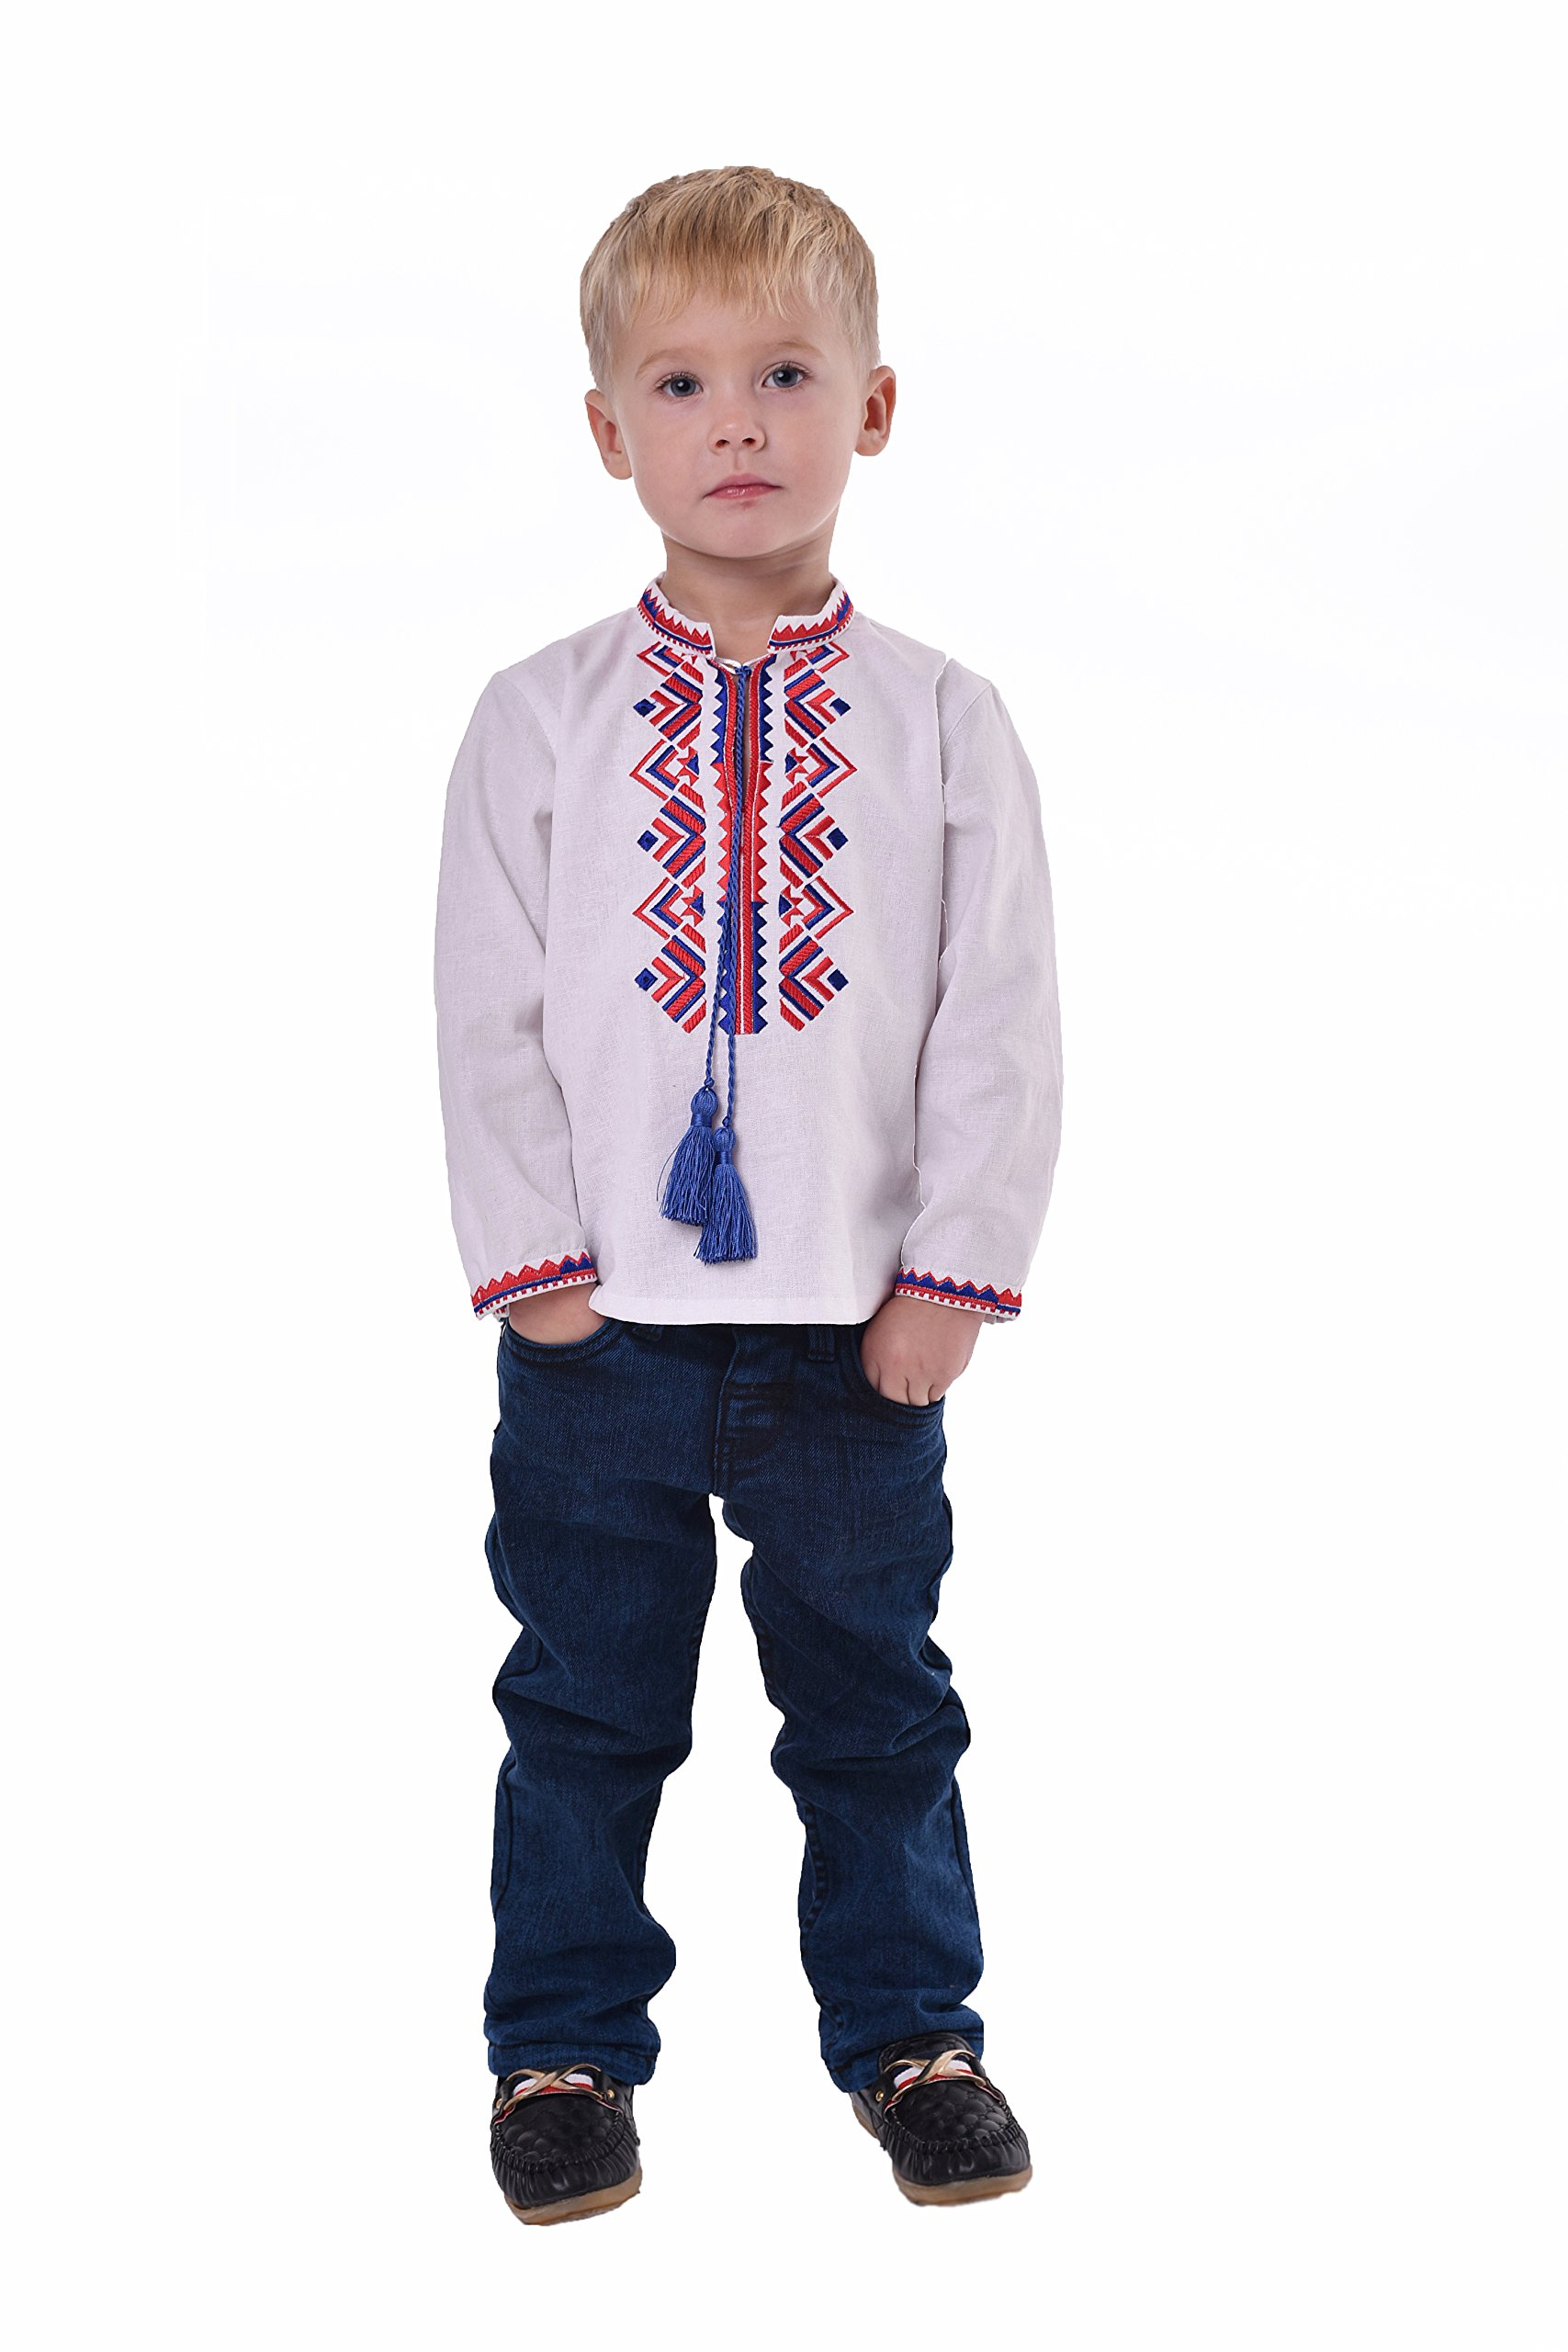 Boys Shirts With Embroidery. Ukrainian Vyshyvanka. Children's Traditional Ukrainian Shirts With Collar For Boys. (4.5-5 Years)